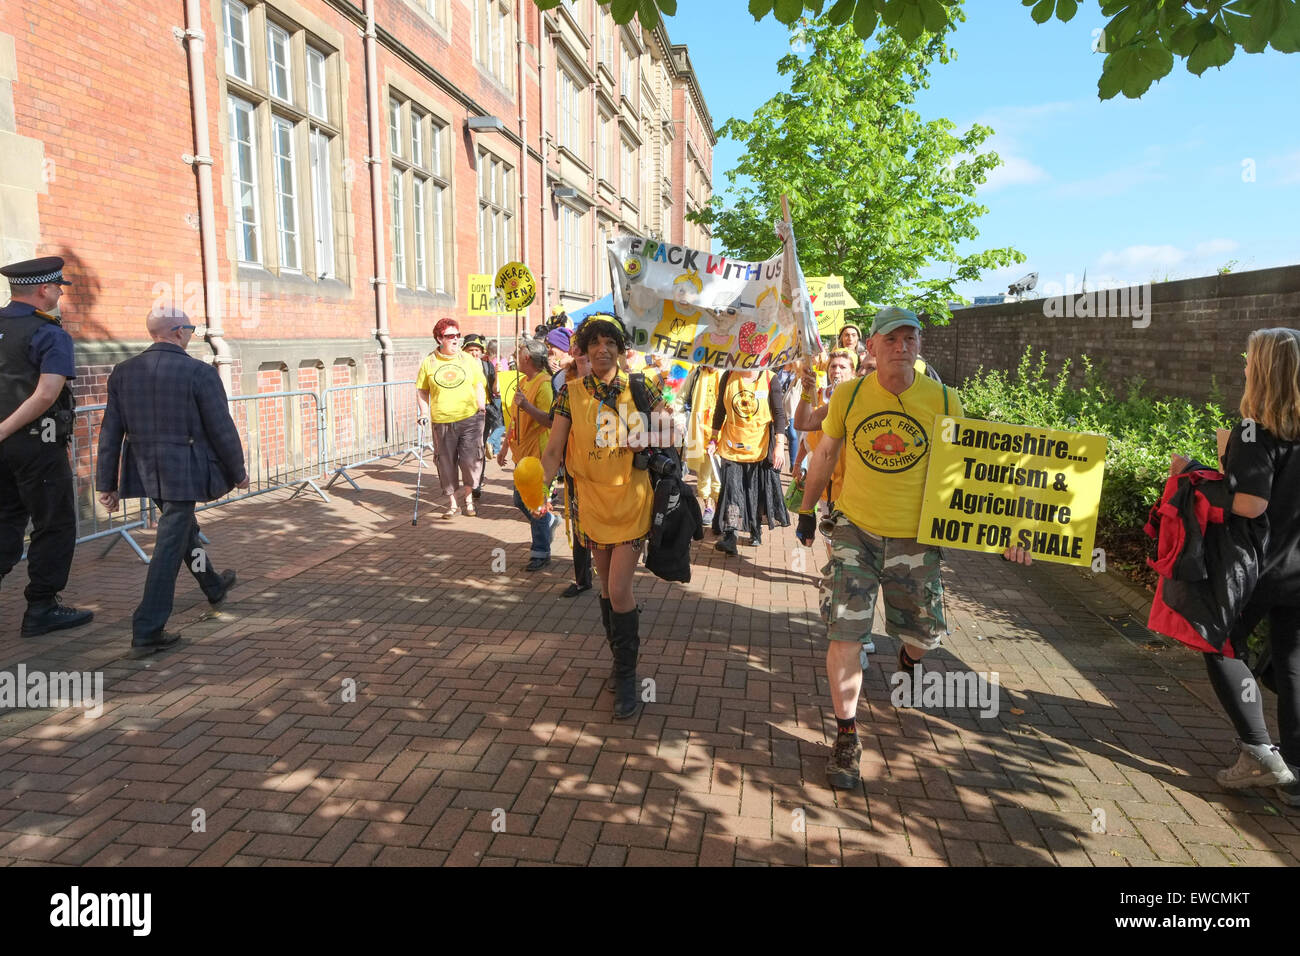 Anti-fracking demonstrators outside Lancashire County Council headquarters in Preston, UK. - Stock Image